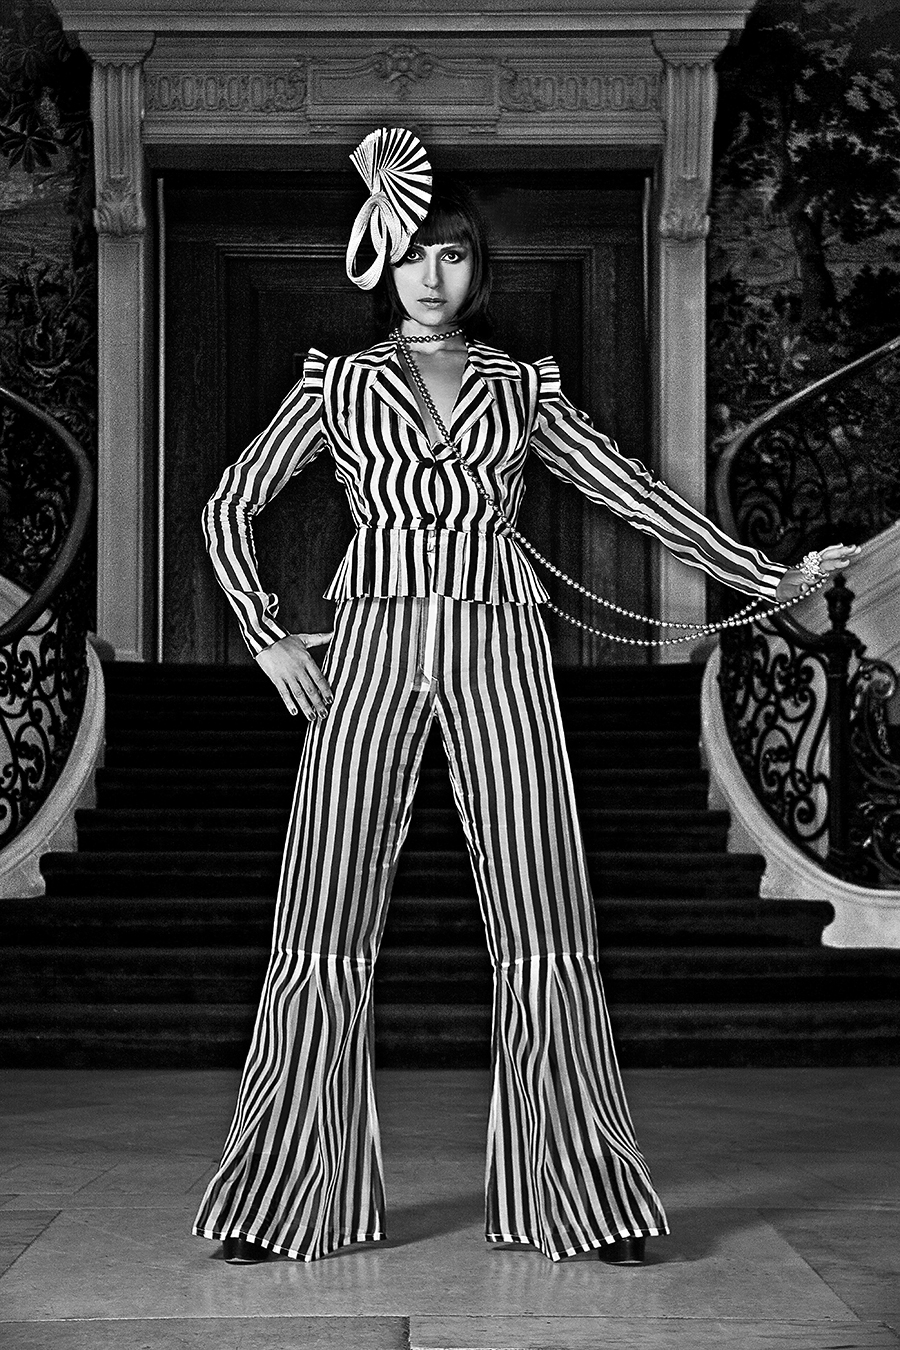 Tony_Ward_fashion_photography_German_Cosmospolitan_stripes_black_white_hats_elegant_interiors_mannequins